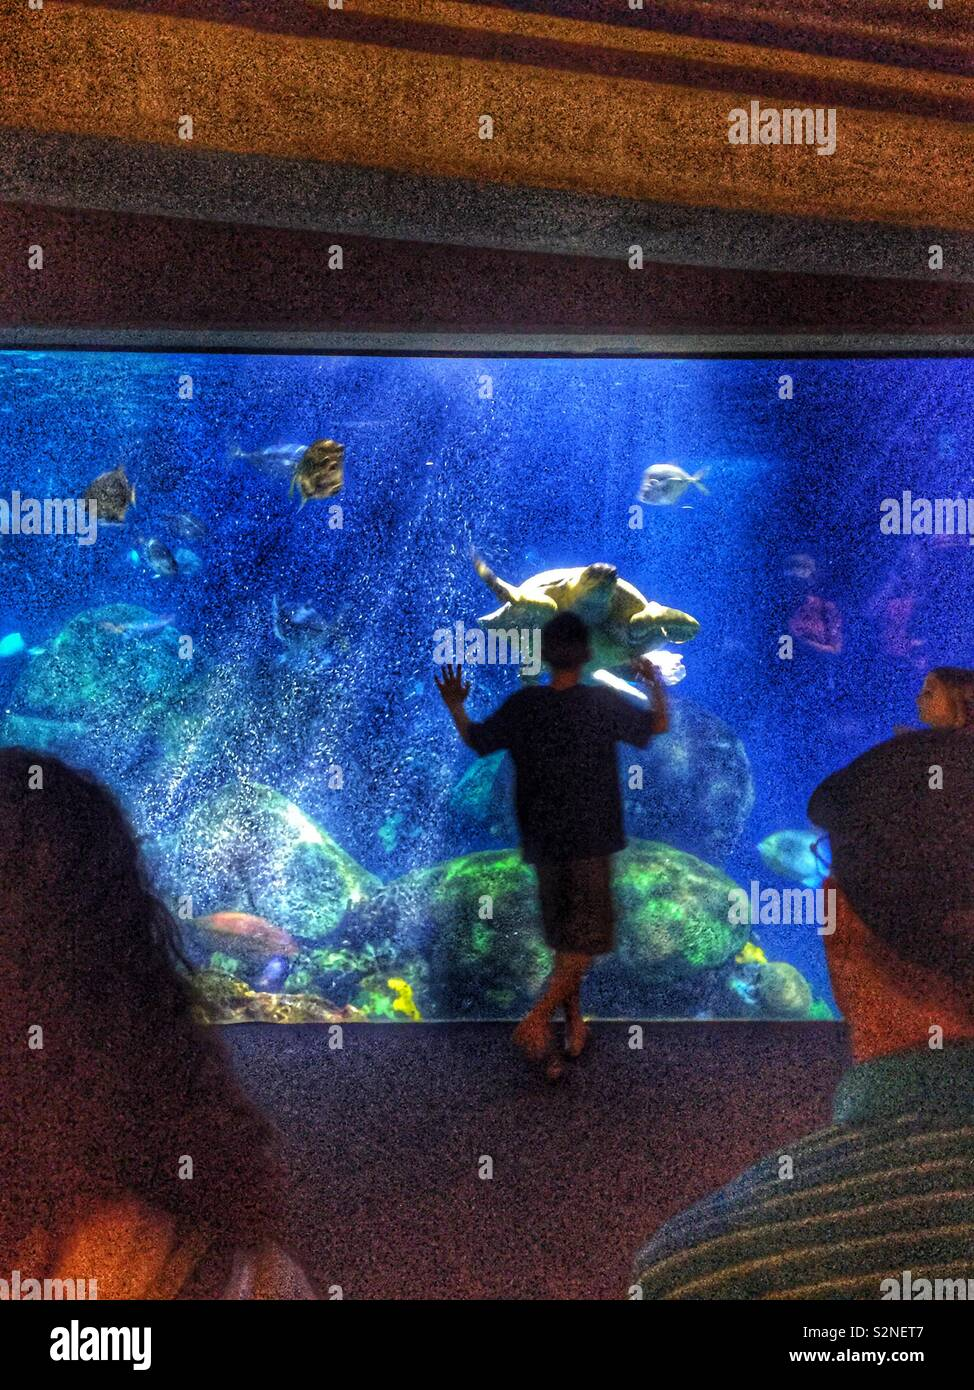 Get close (photo of people having a close encounter with a giant sea turtle at the Chattanooga Aquarium in Tennessee) - Stock Image